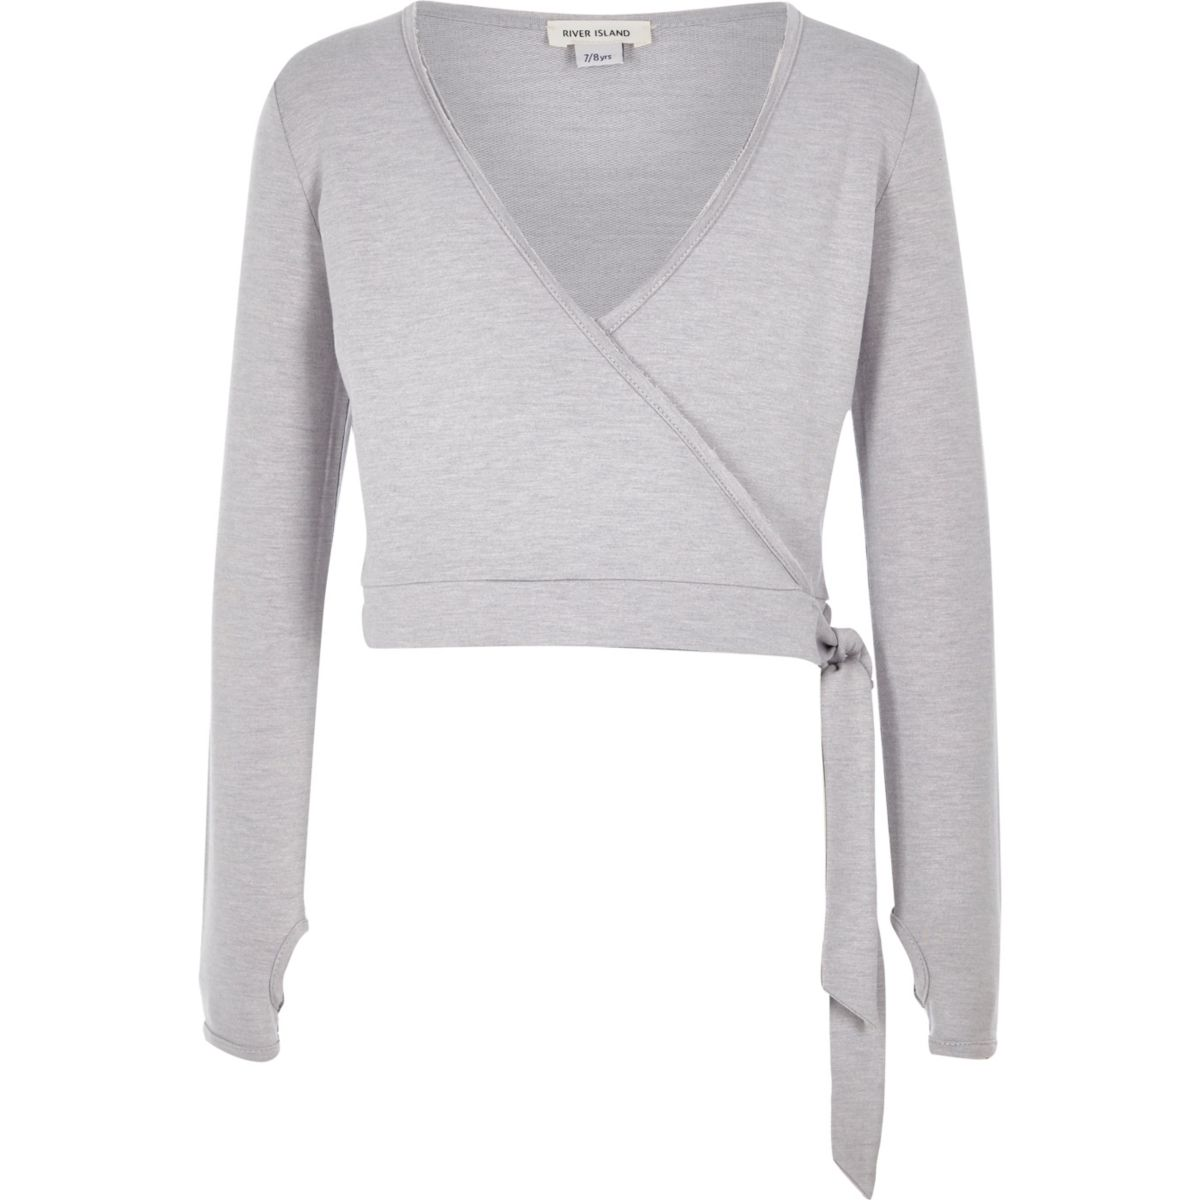 Girls RI Active grey wrap front ballet top